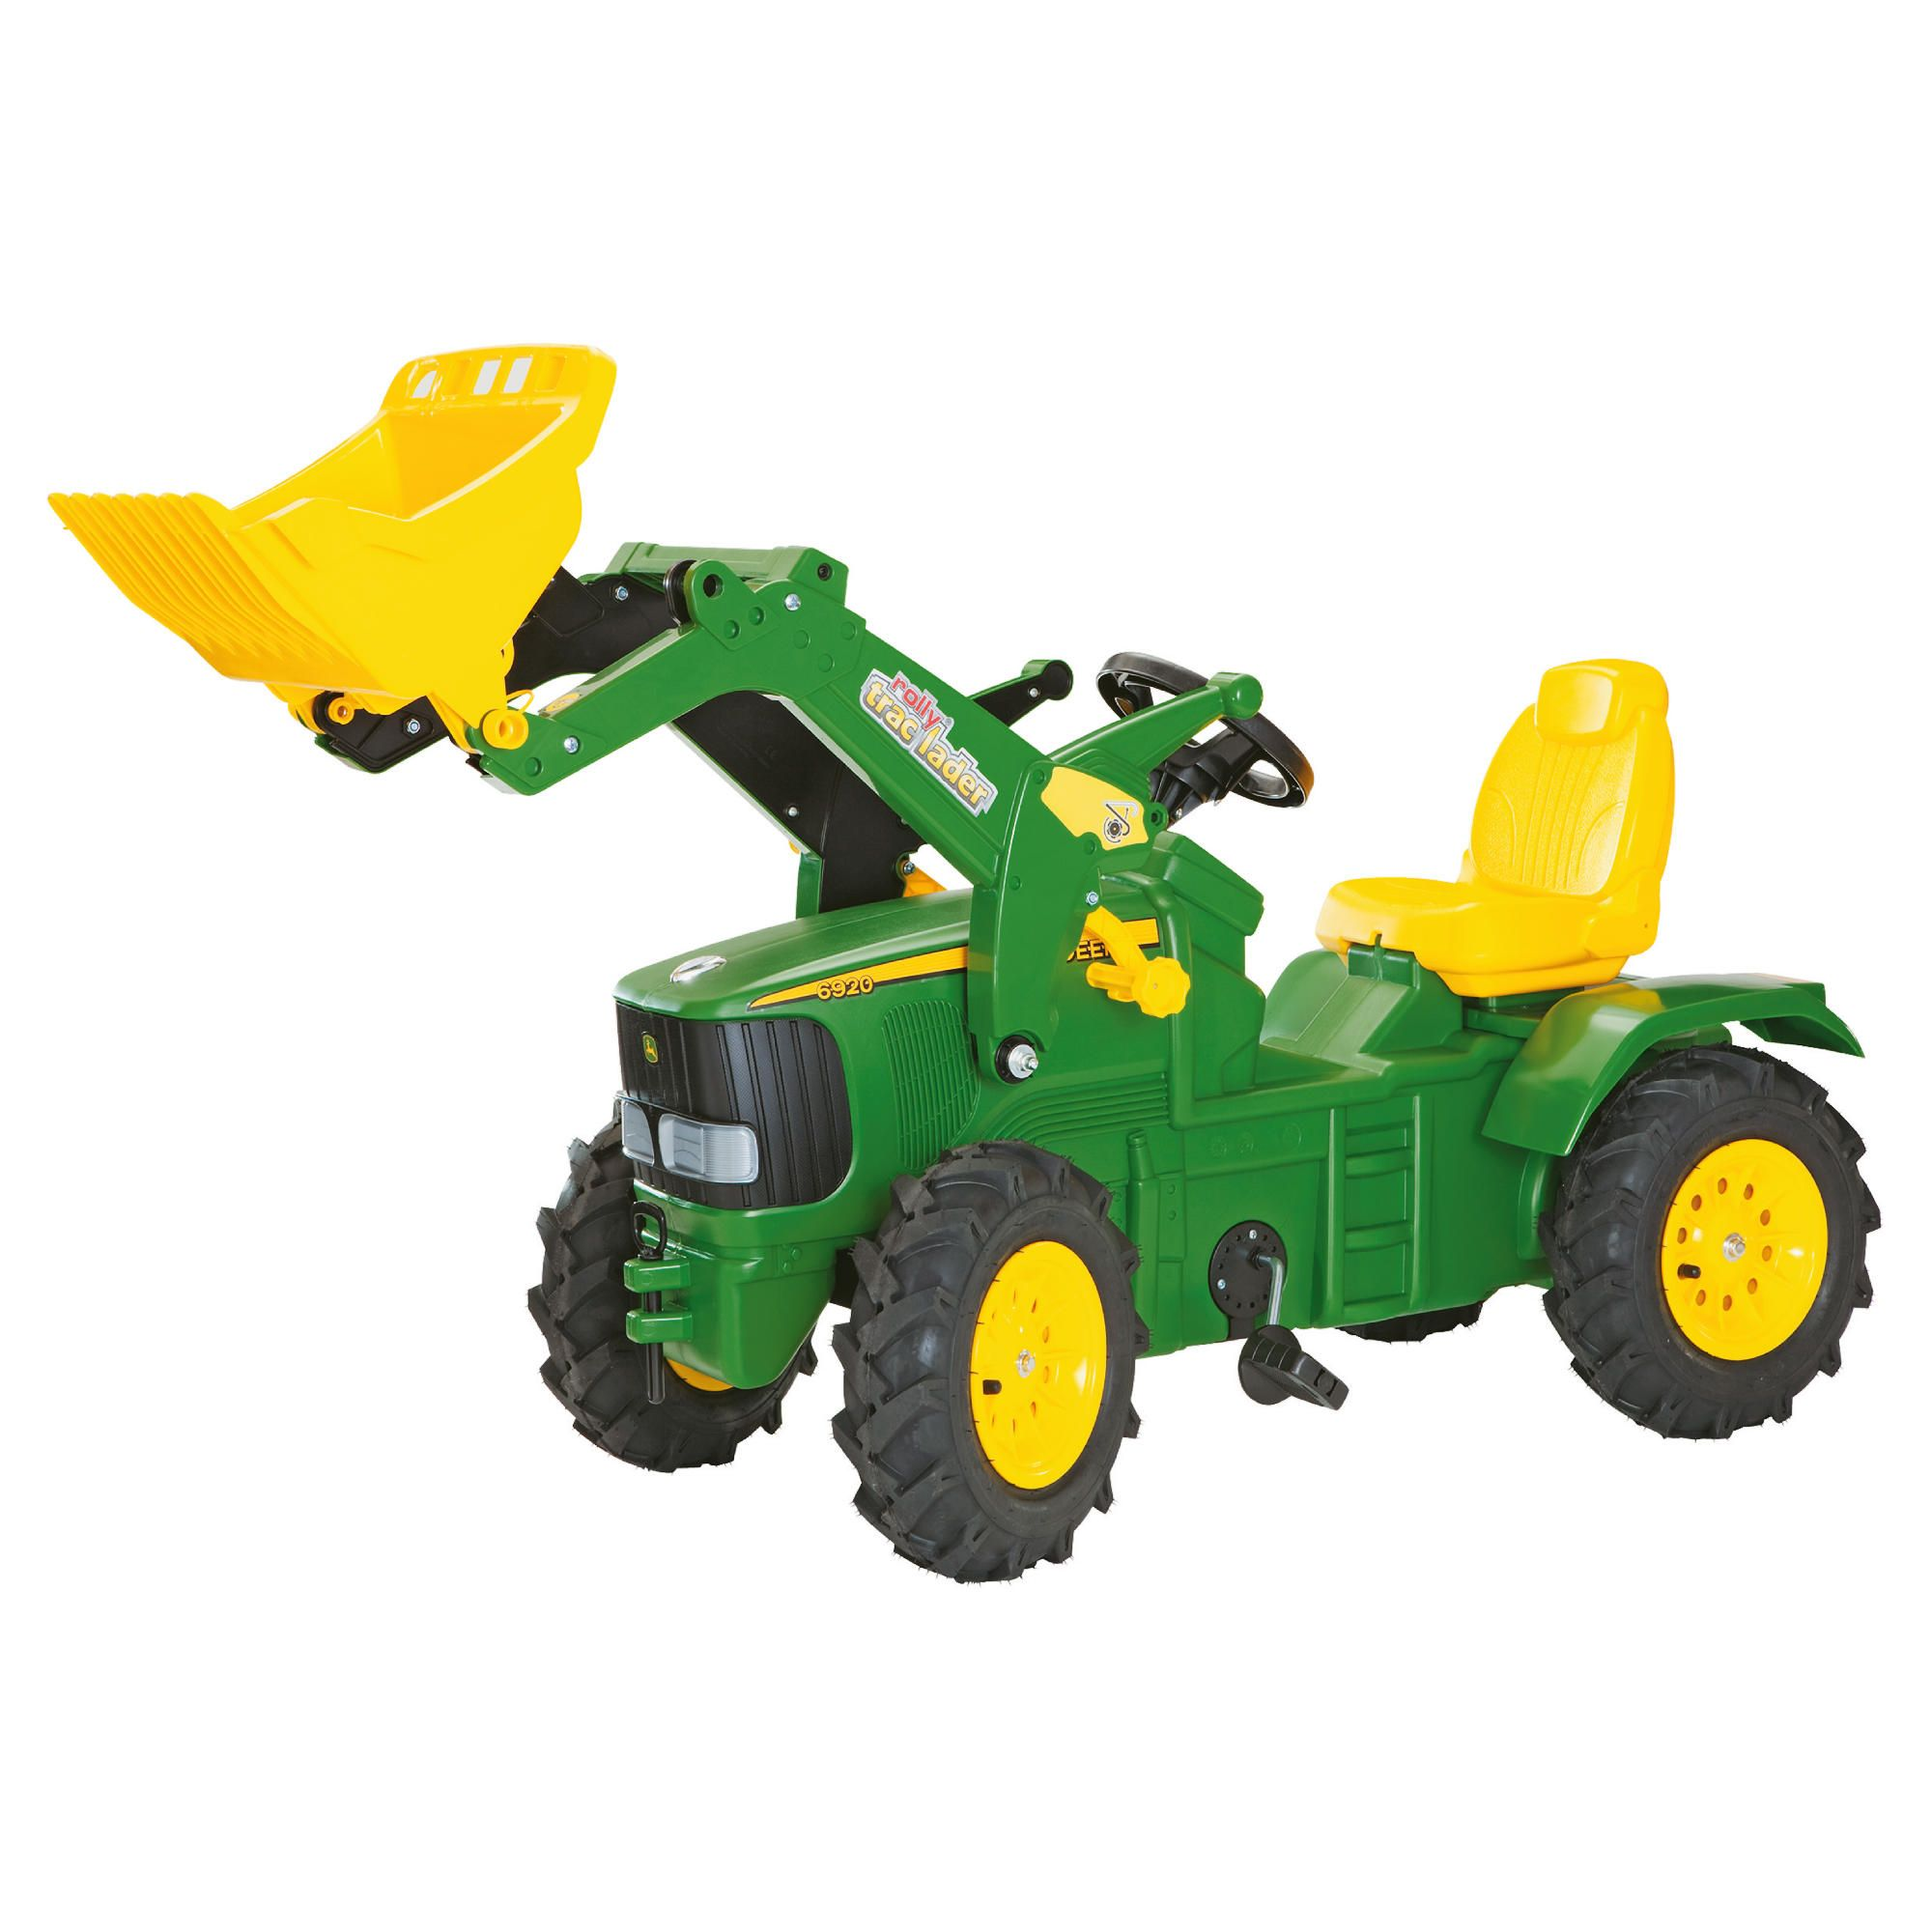 John Deere 6920 Ride-On Tractor With Pneumatic Tyres & Frontloader at Tesco Direct